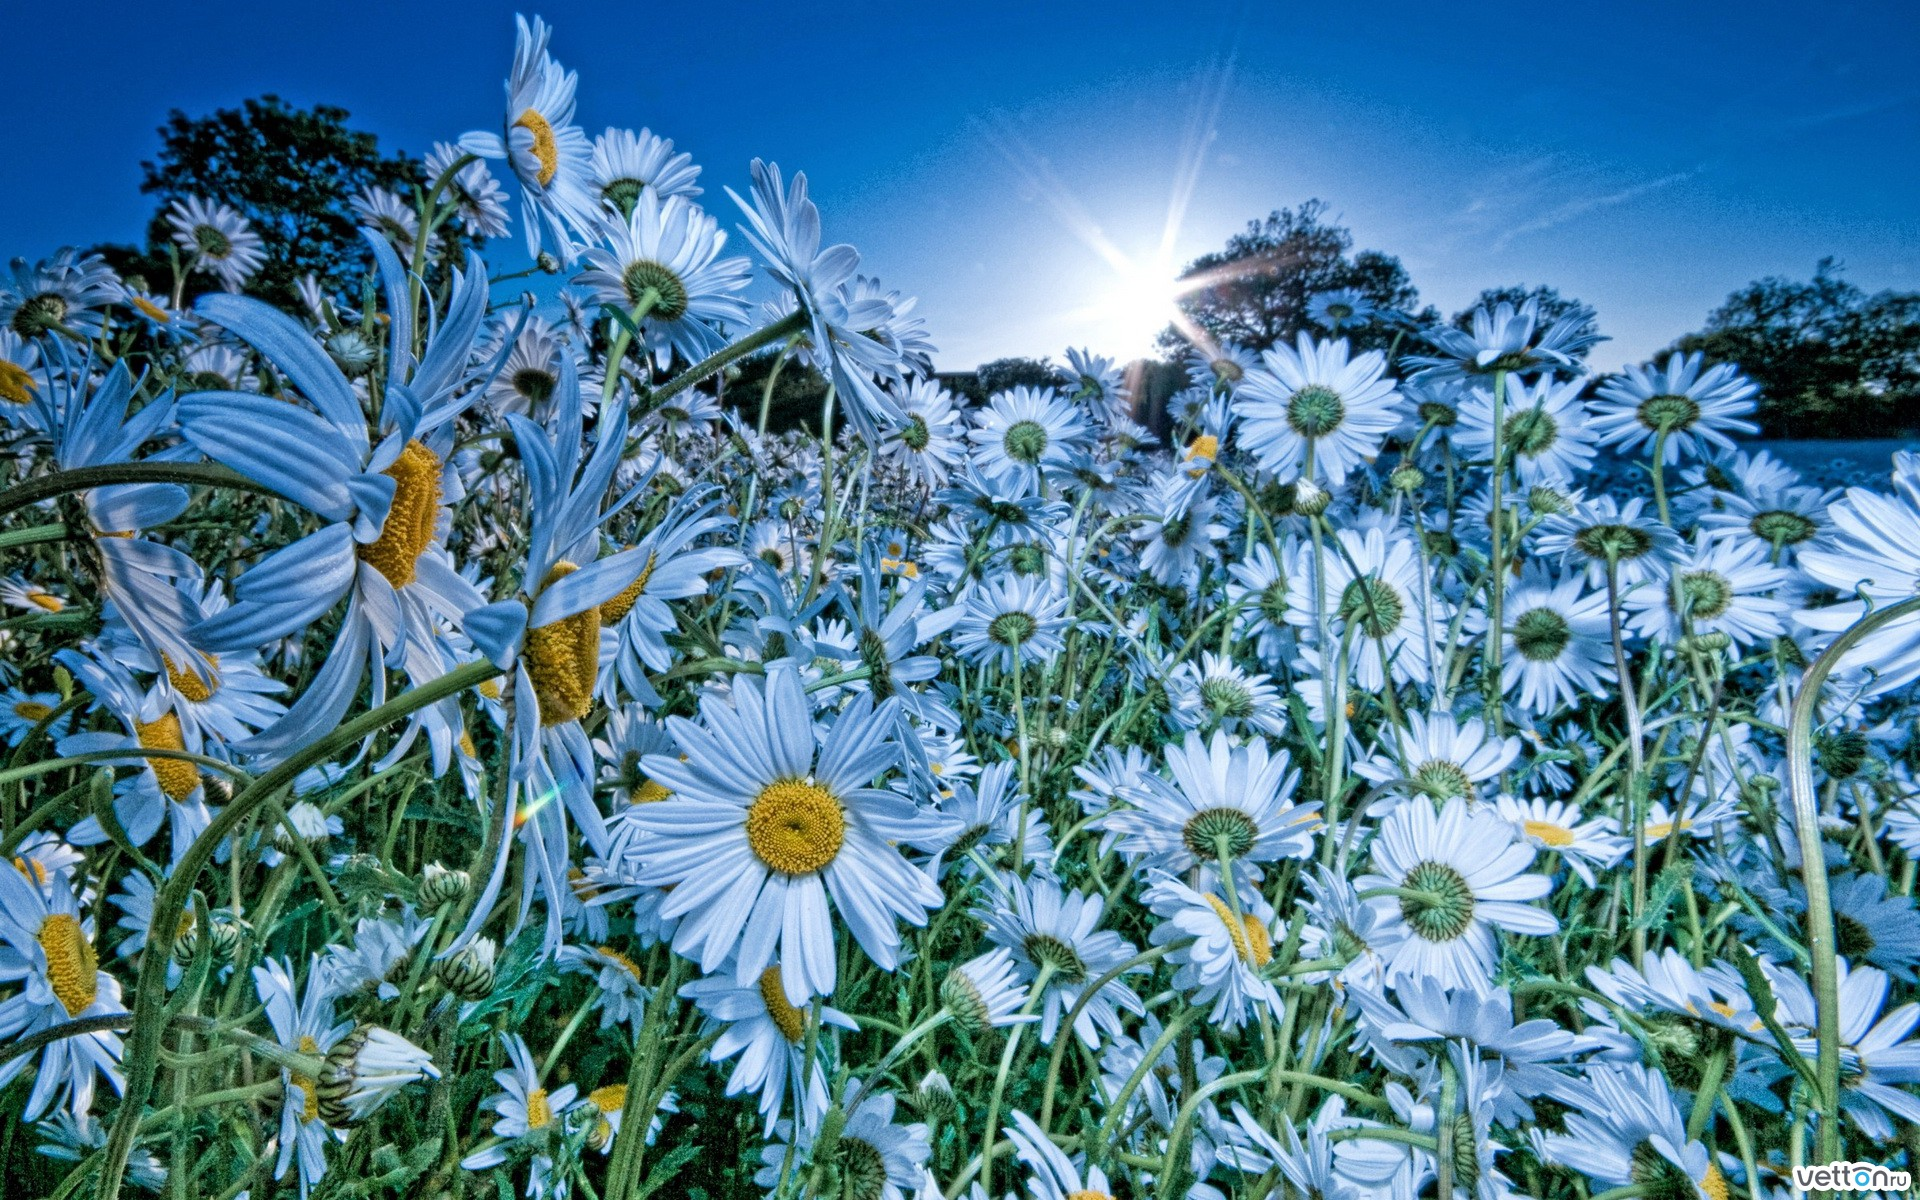 the sun, golf, summer, flowers, daisies